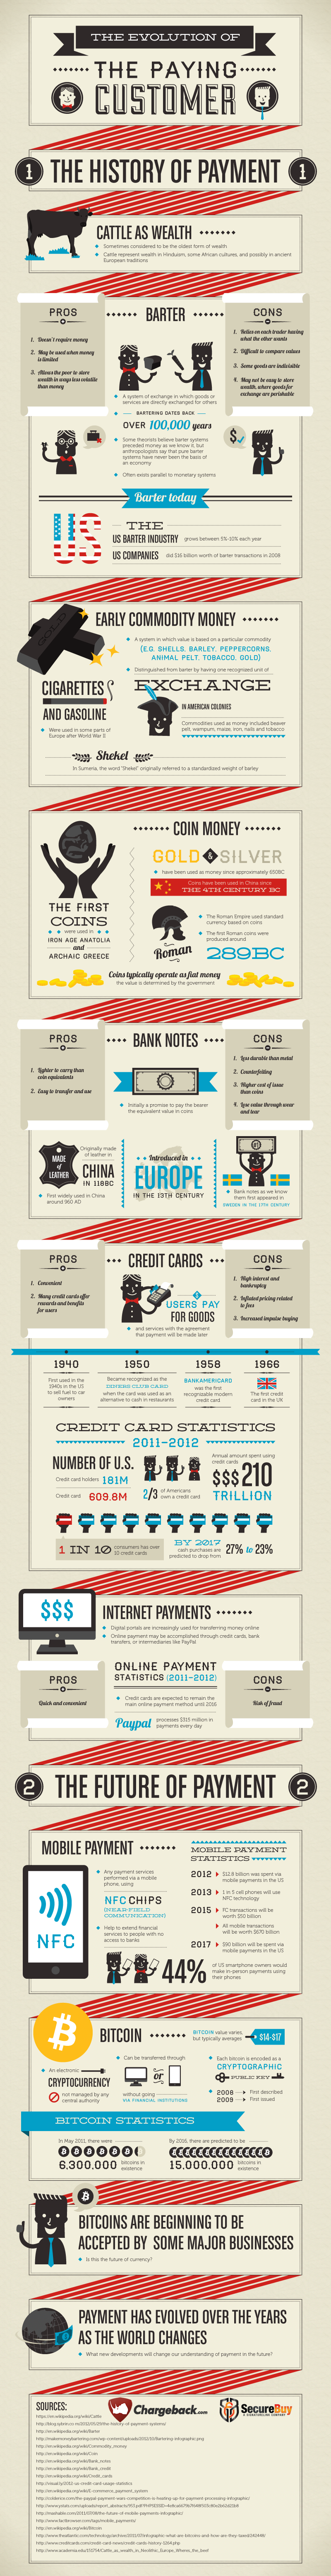 The Evolution of the Paying Customer